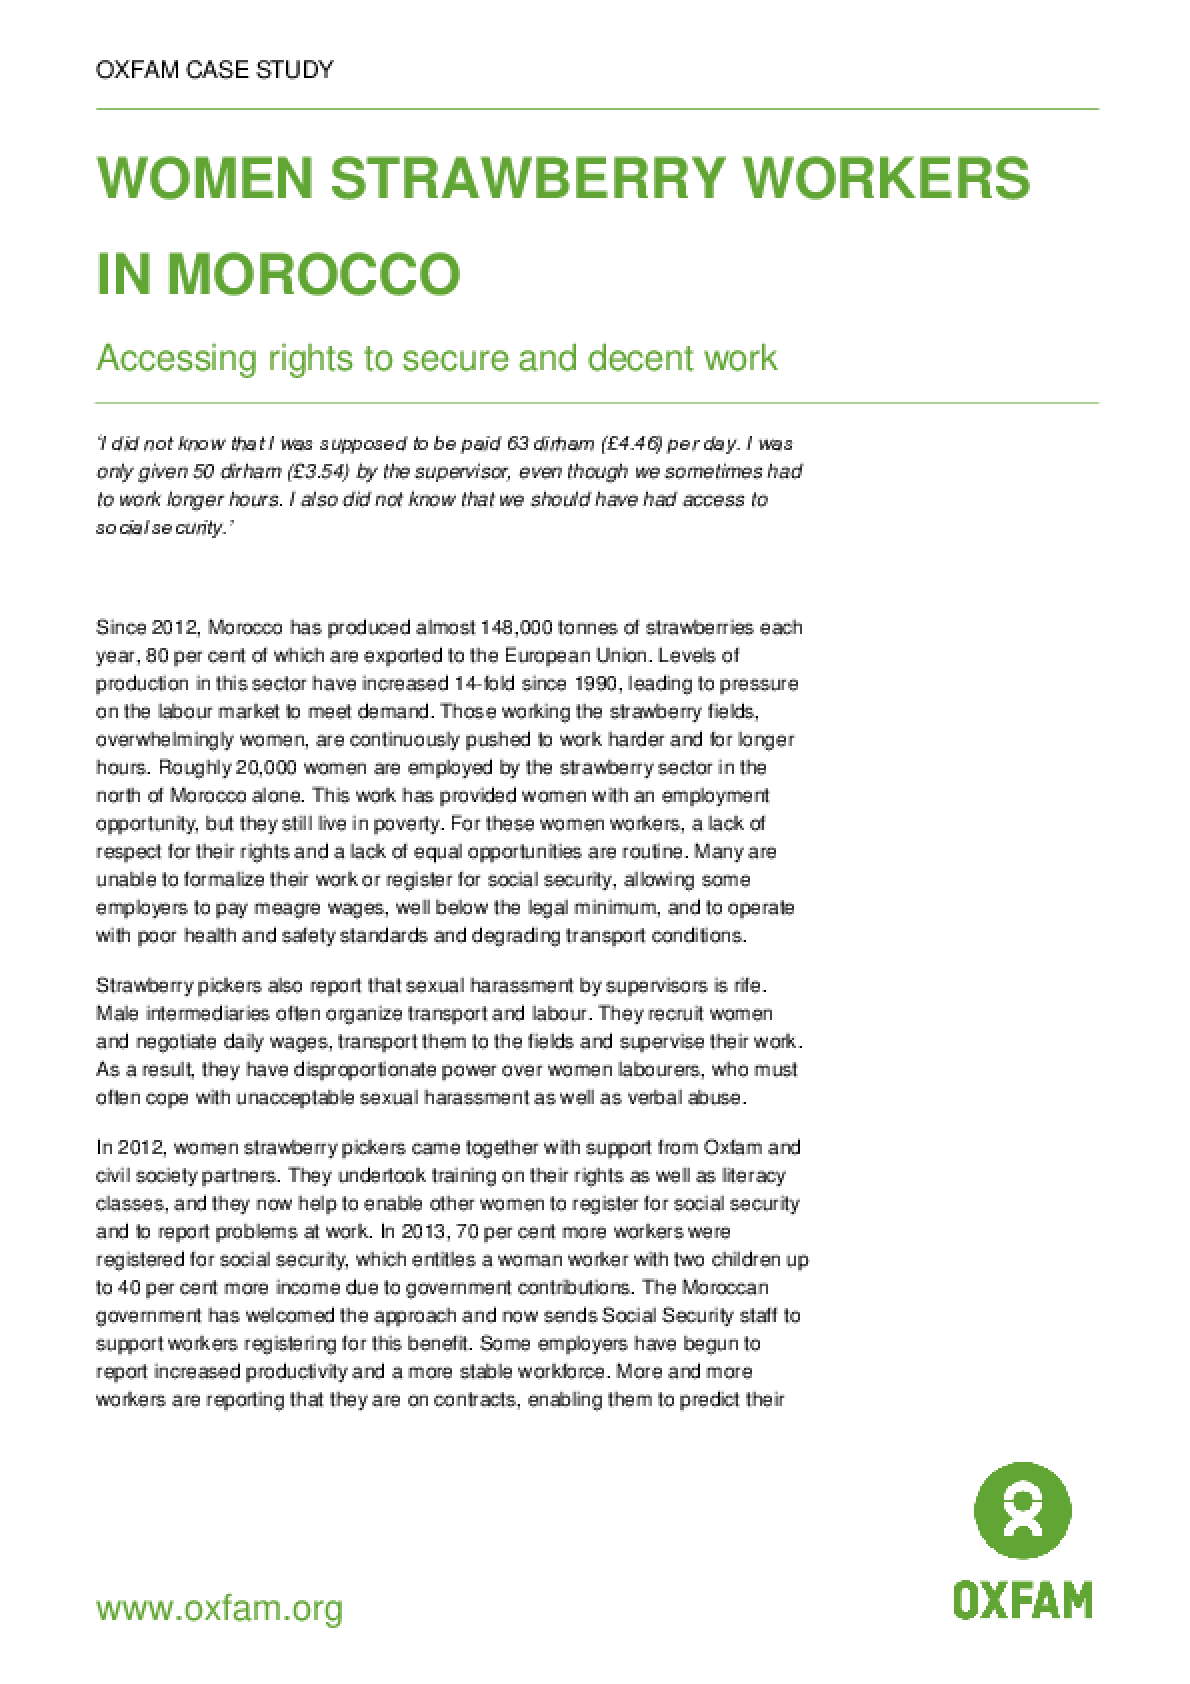 Women Strawberry Workers in Morocco: Accessing rights to secure and decent work